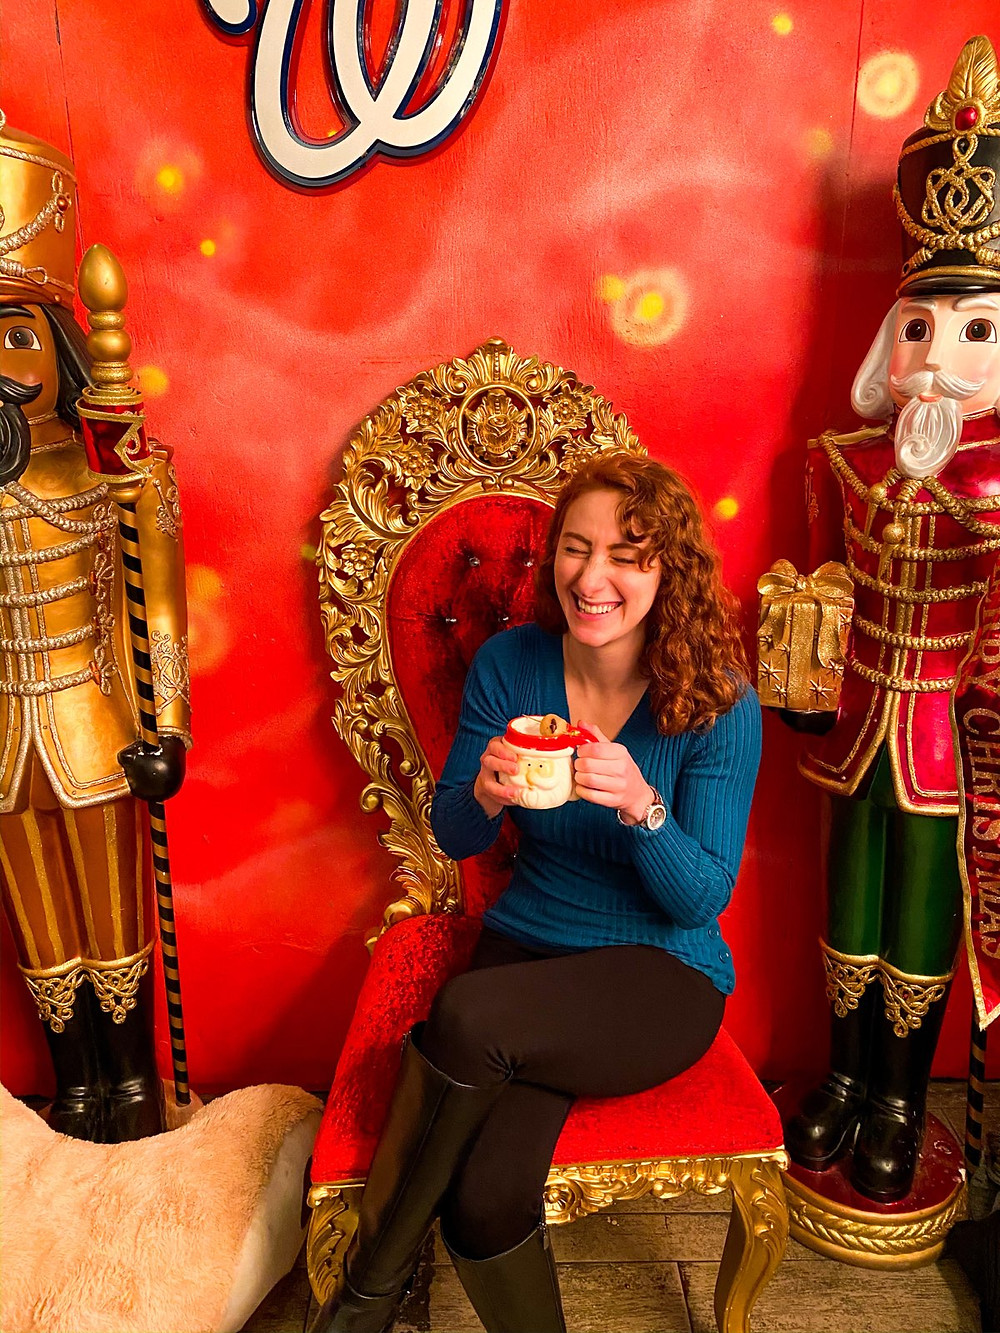 Laughing next to nutcrackers